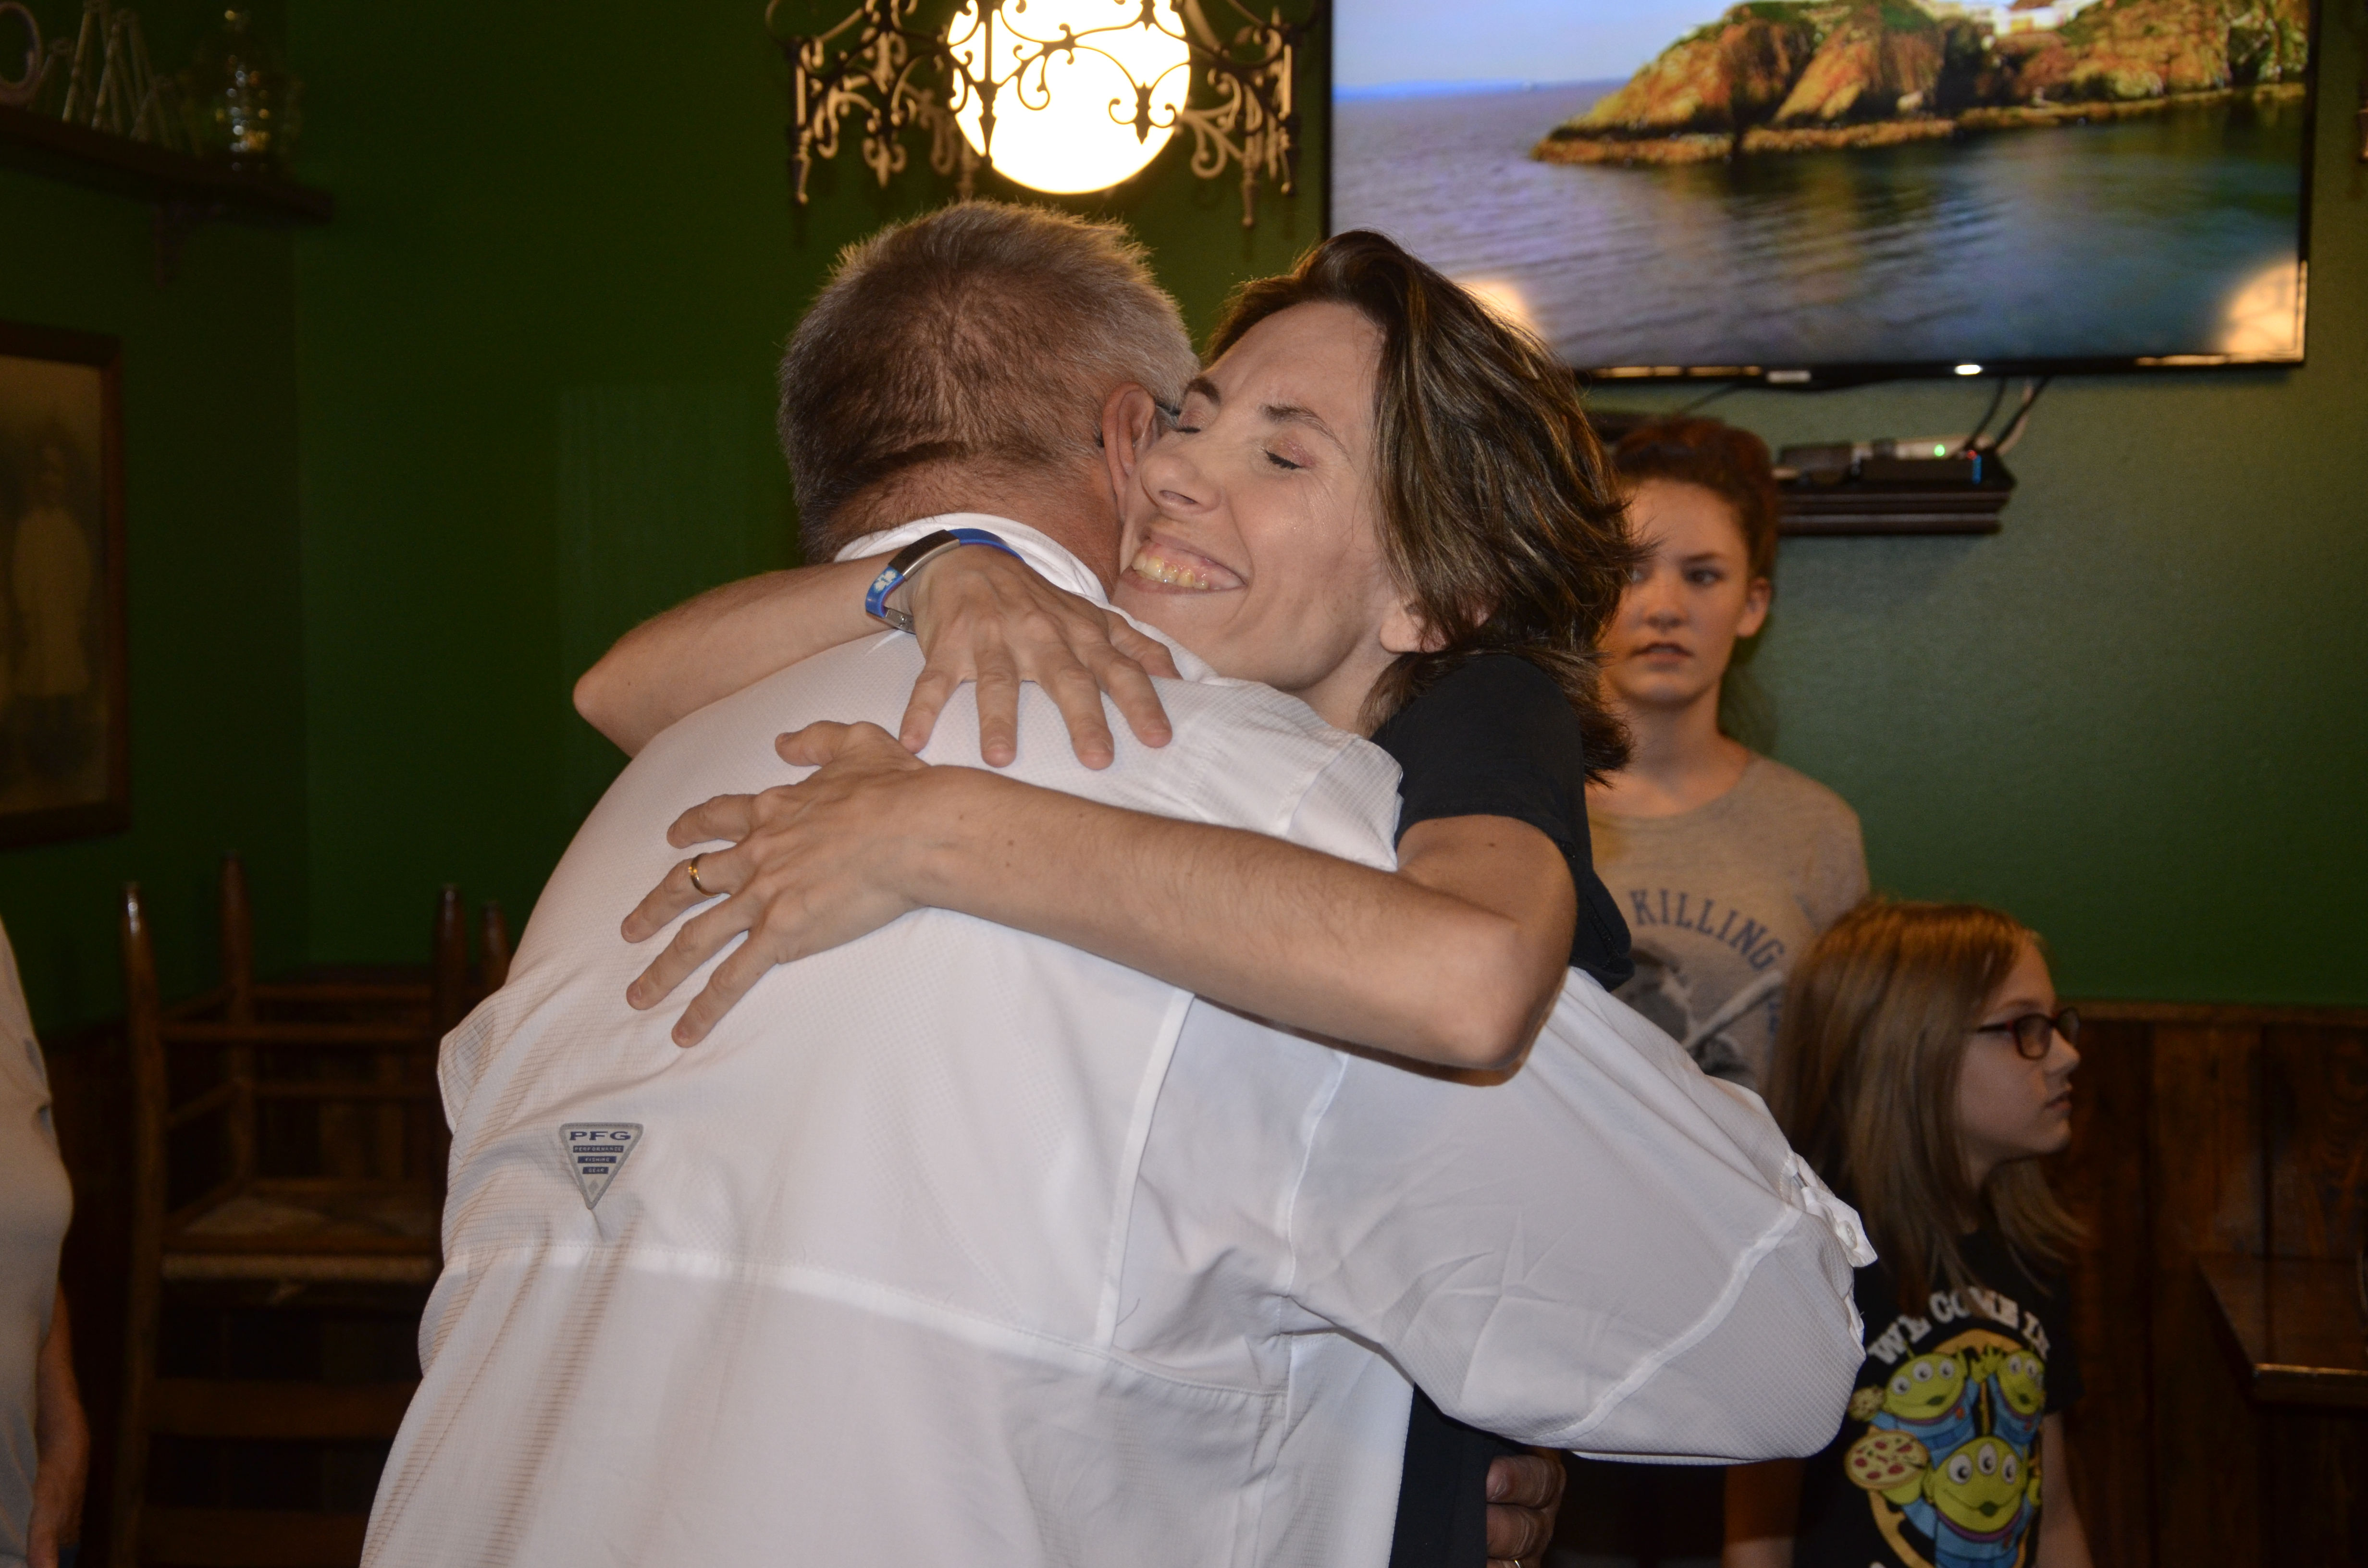 Dawn Wilkerson hugs John Albury on Monday when they met for lunch at Daddy O'Brien's. Albury, a parademic, rushed to Wilkerson's aid during an epileptic seizure at the restaurant in July. (CARL MCKINNEY/Lake City Reporter)